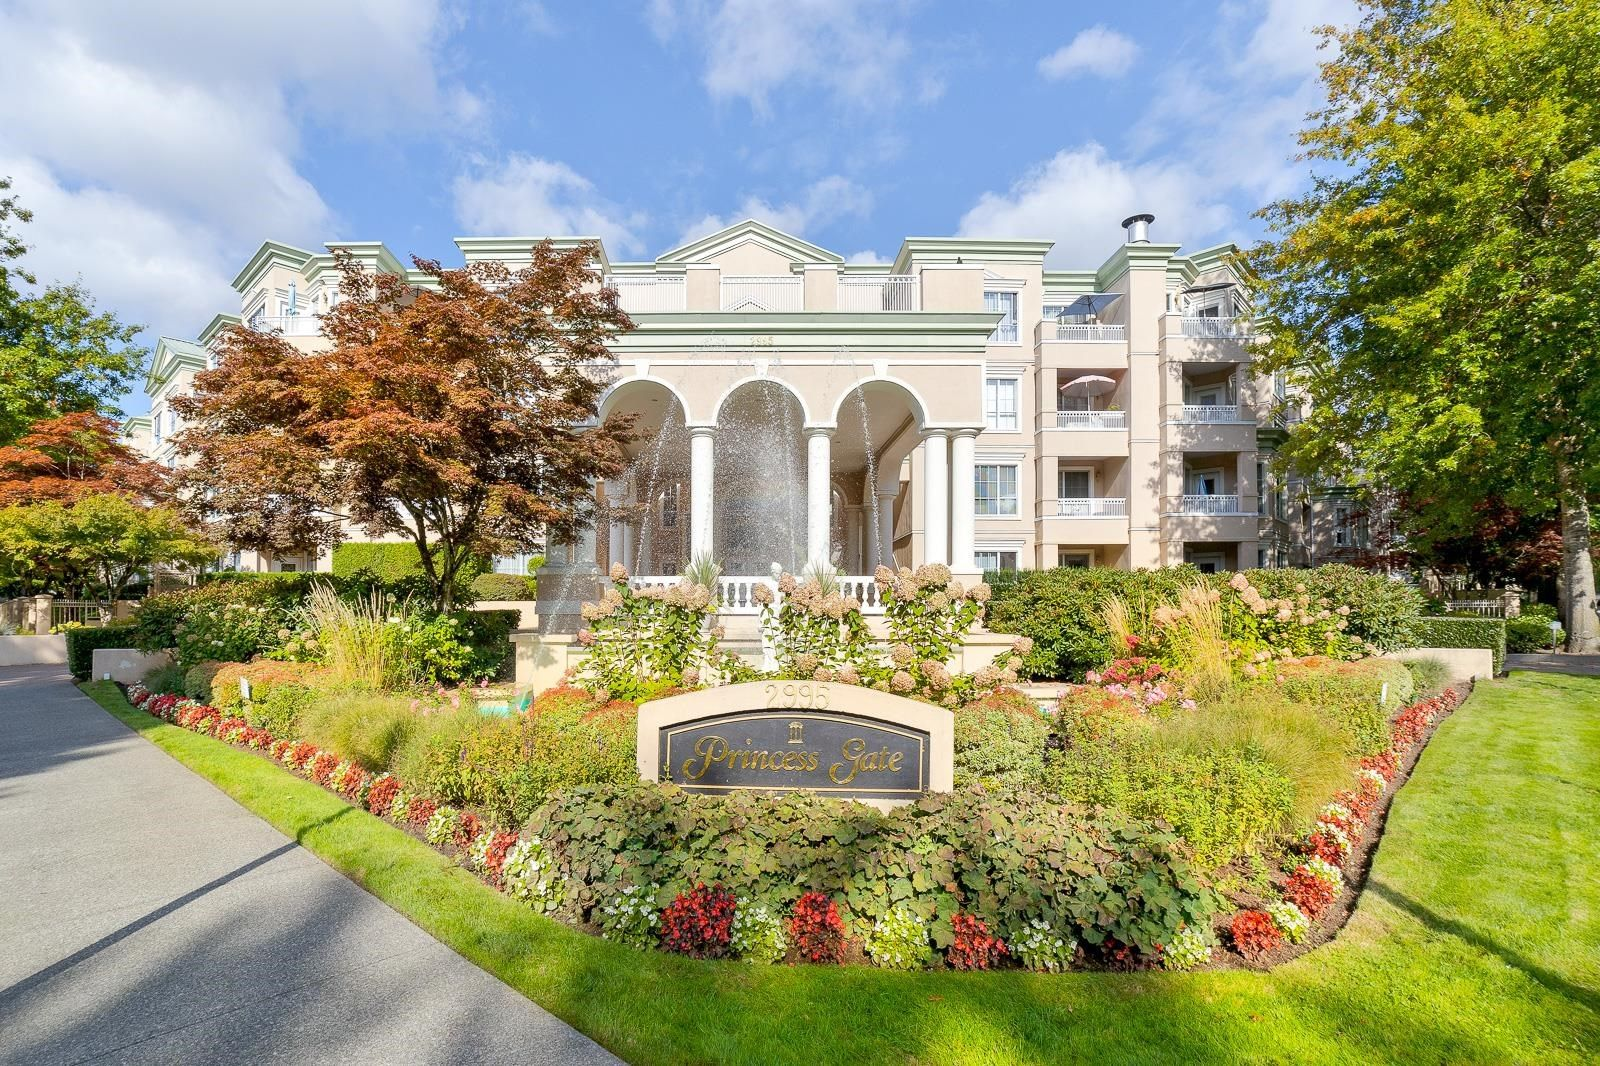 """Main Photo: 315 2995 PRINCESS Crescent in Coquitlam: Canyon Springs Condo for sale in """"PRINCESS GATE"""" : MLS®# R2621080"""